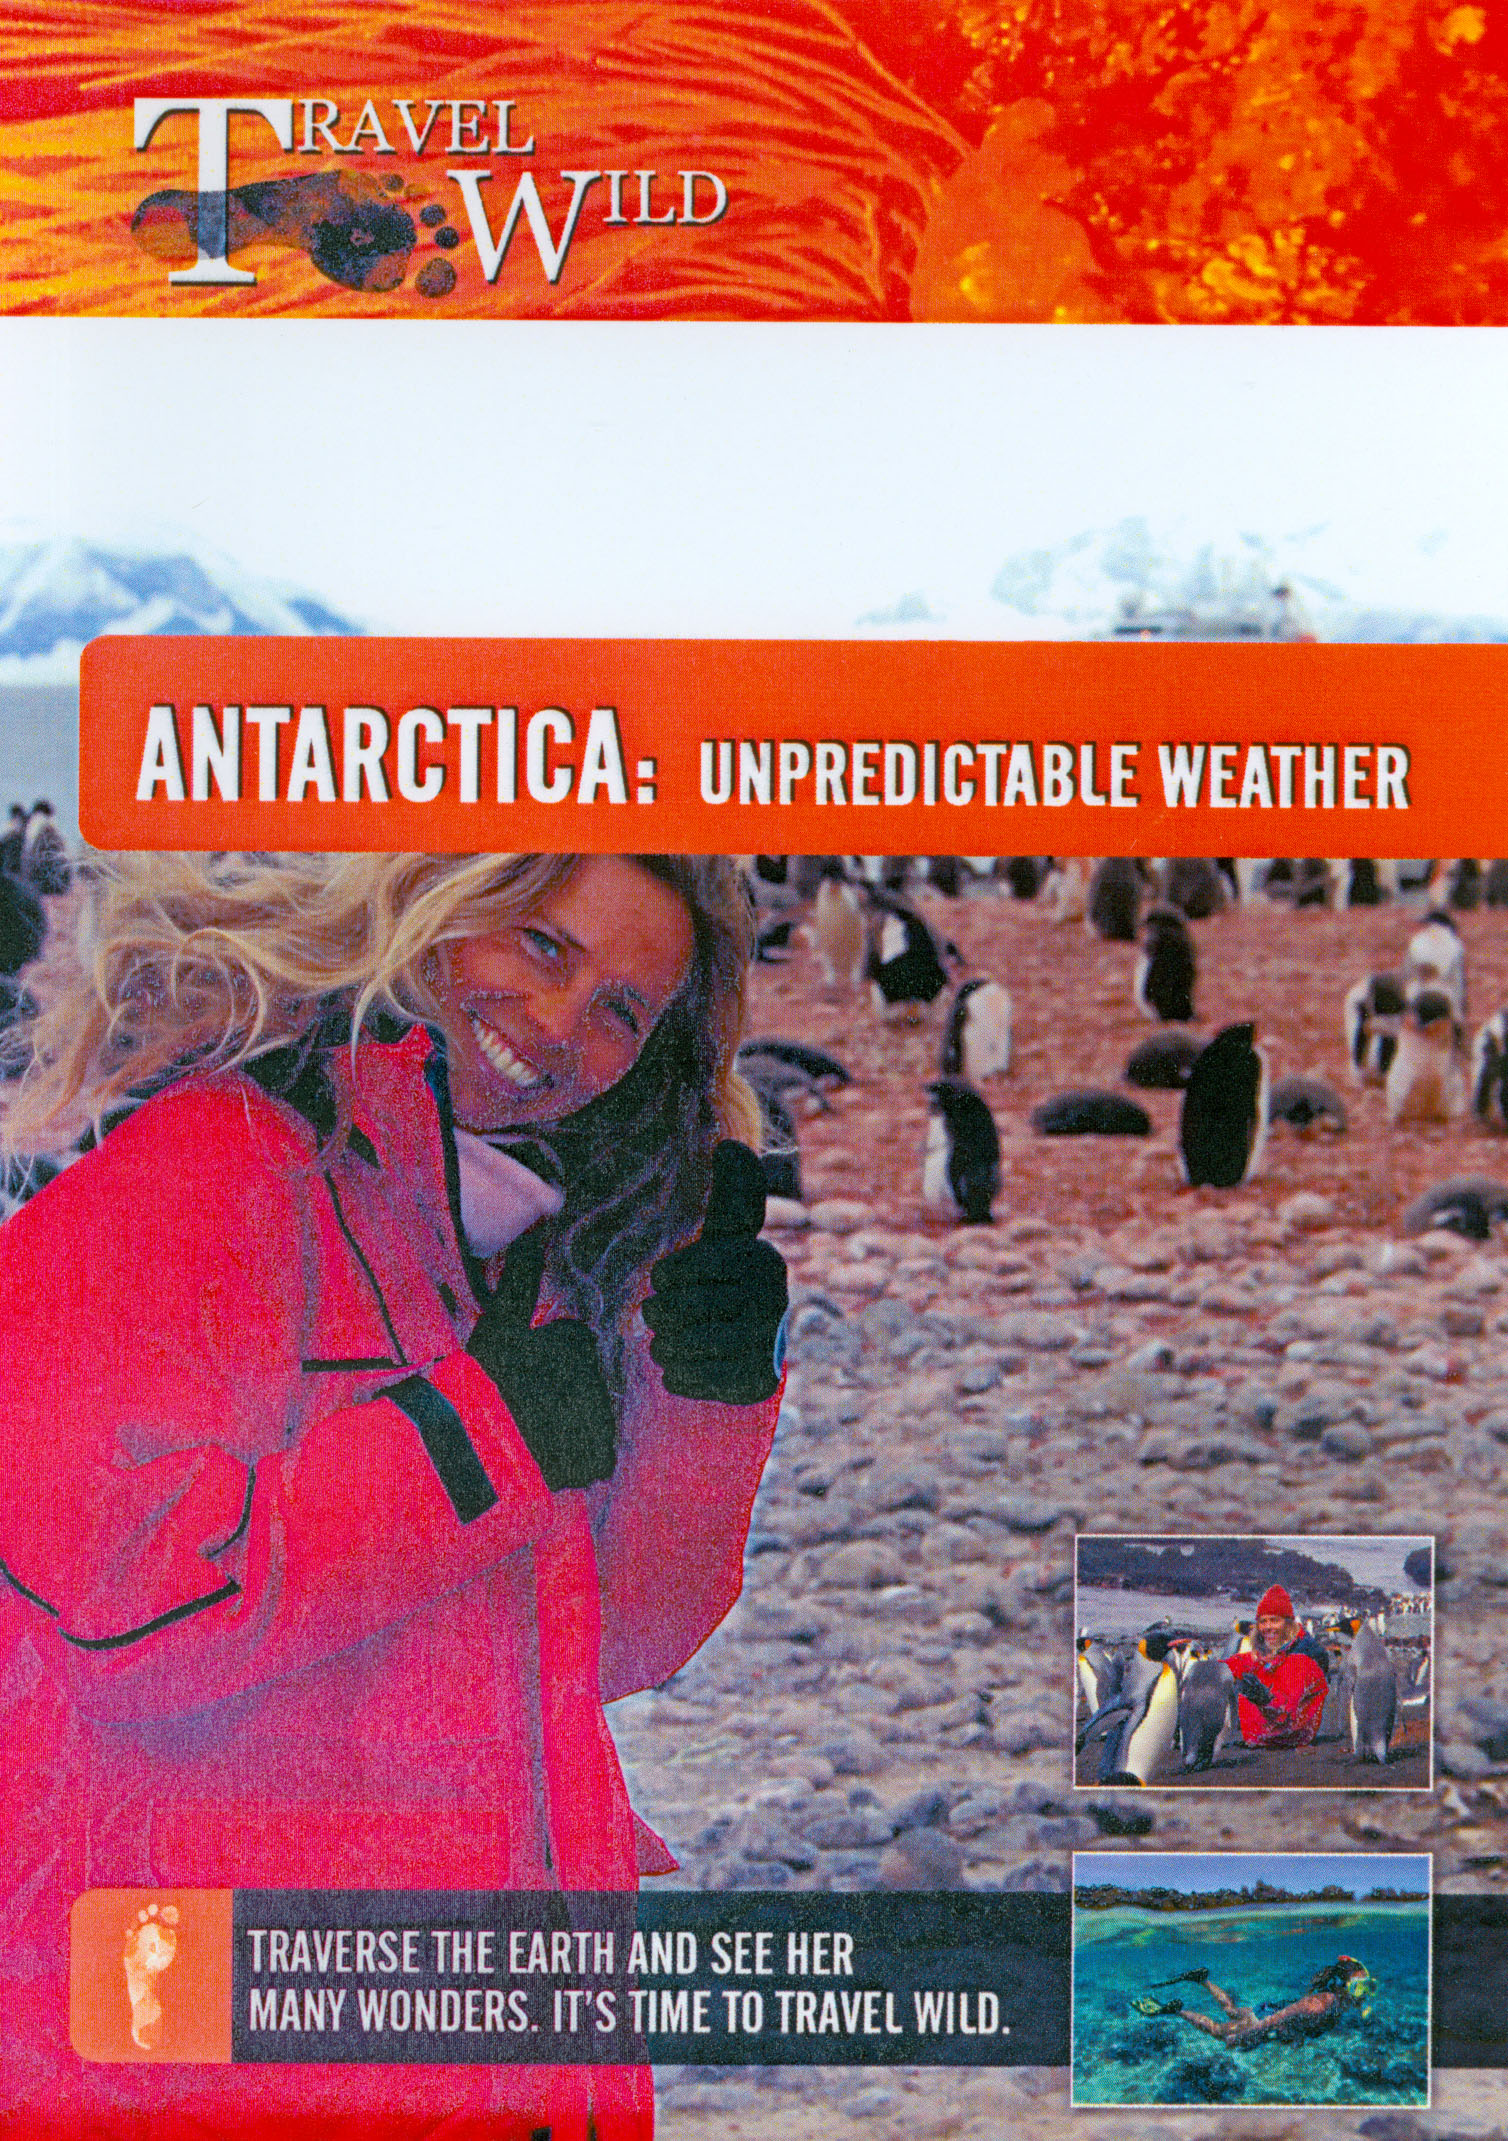 Travel Wild: Antarctica: Unpredictable Weather